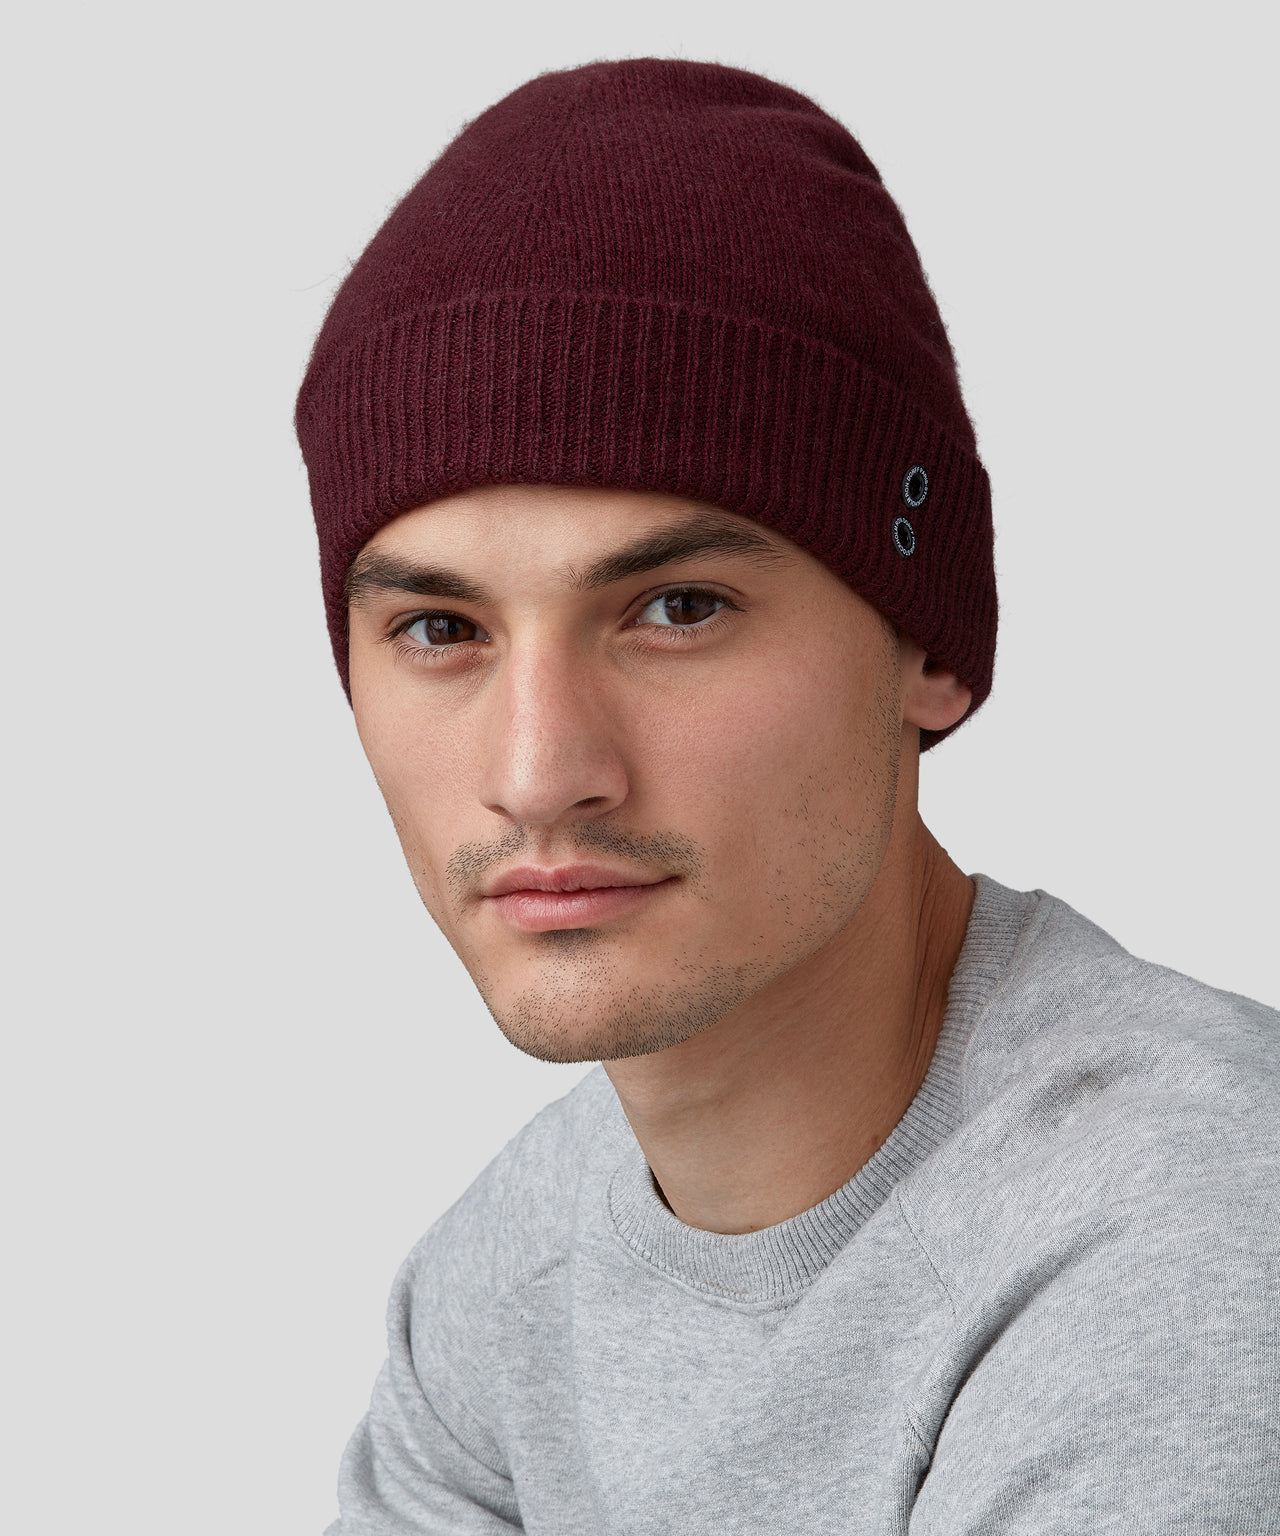 Cashmere Beanie - burgundy red